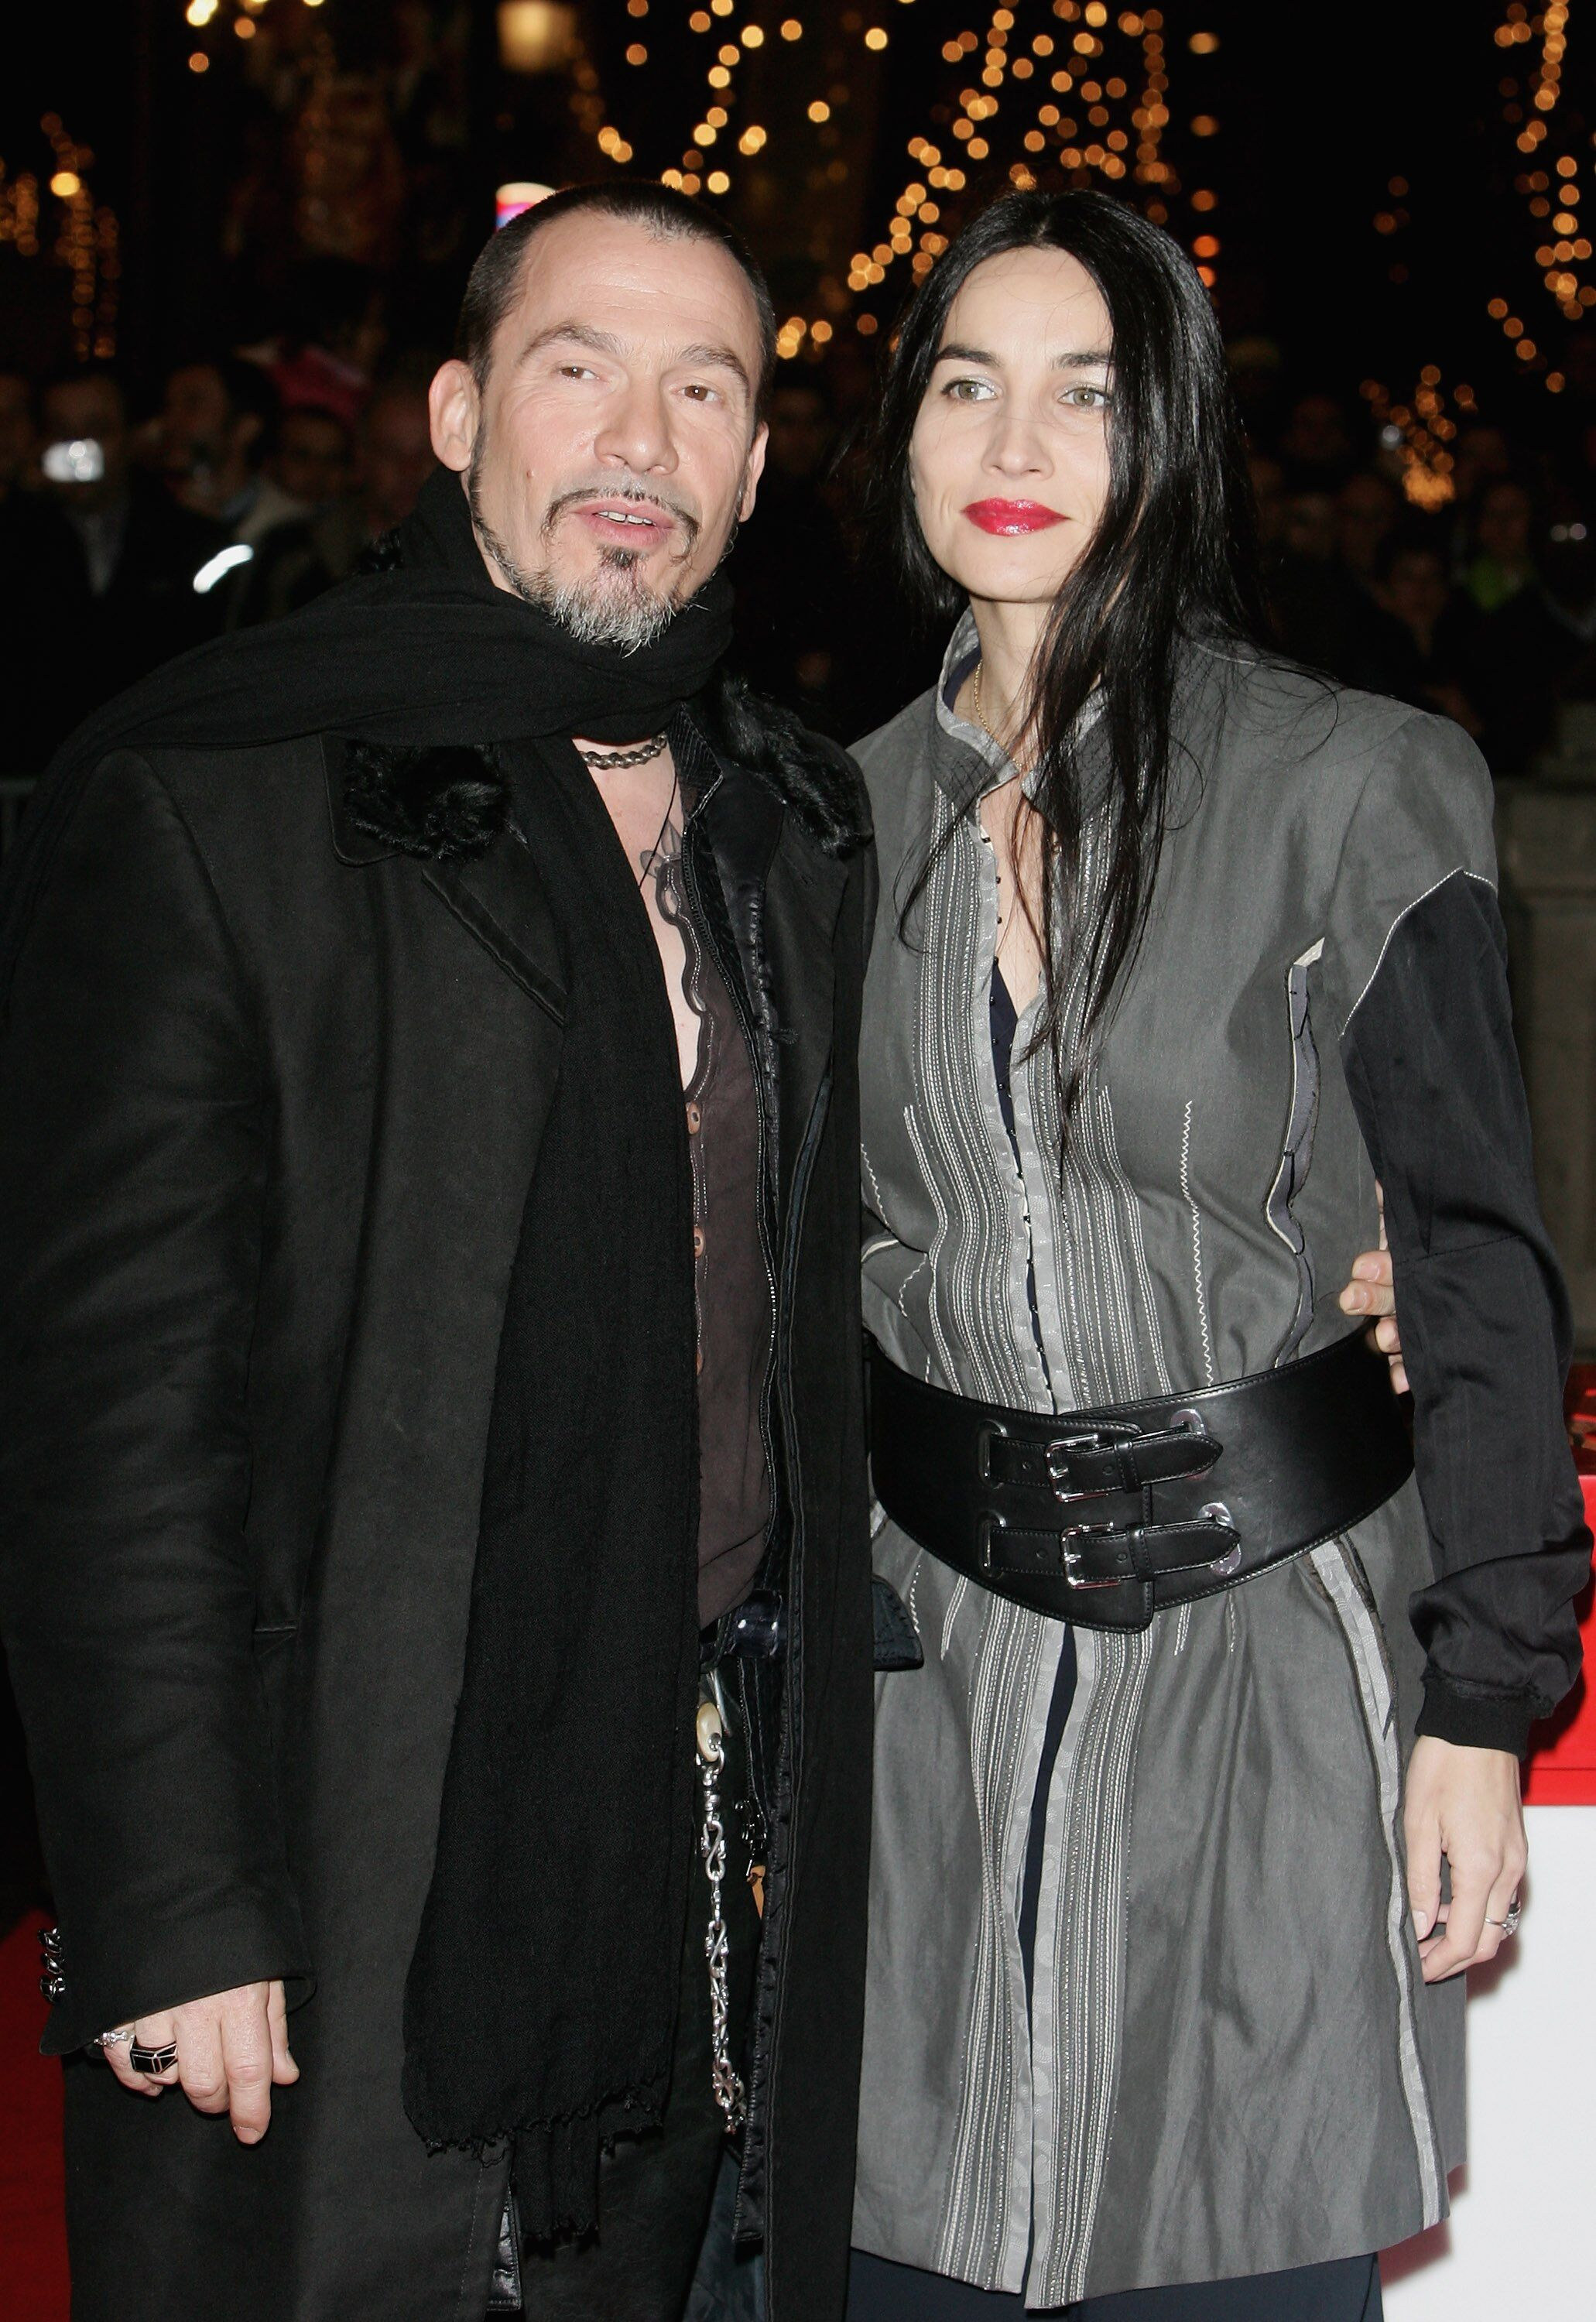 Florent Pagny pose avec son épouse Azucena lors de la cérémonie officielle d'illumination de Noël à Paris, France. | Photo : Getty Images